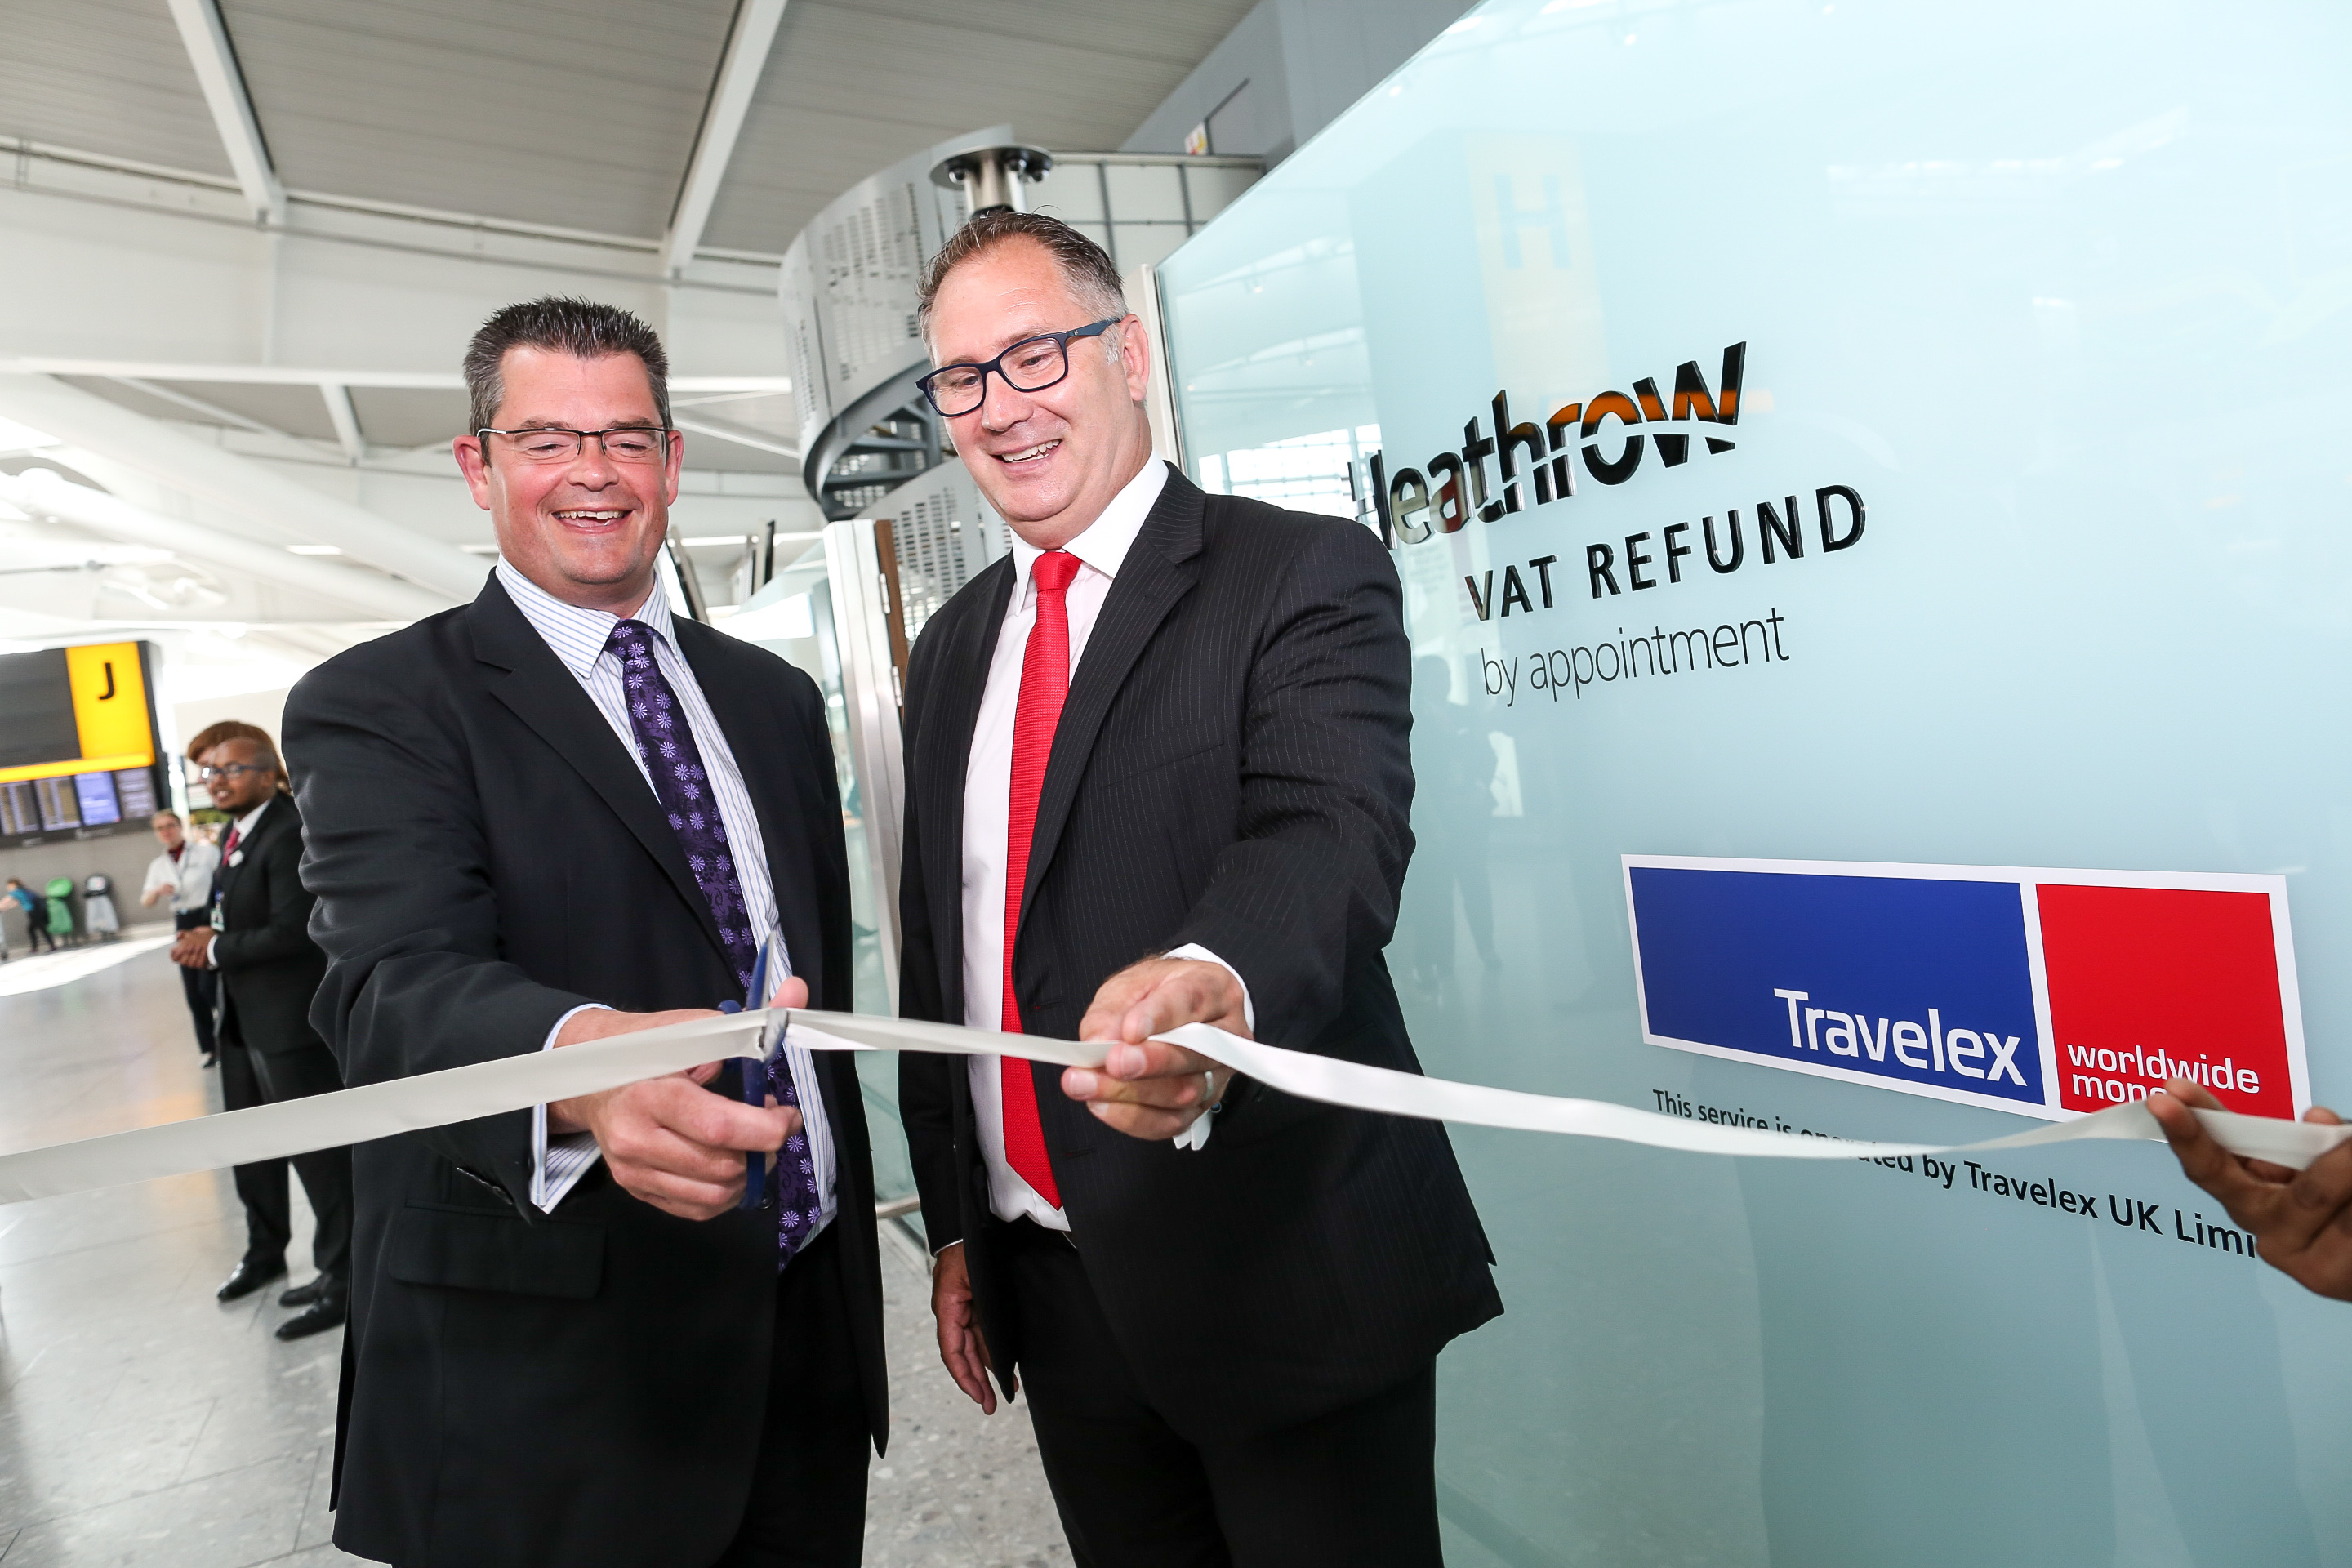 Heathrow And Travelex Launch New Appointment Service For Vat Refunds